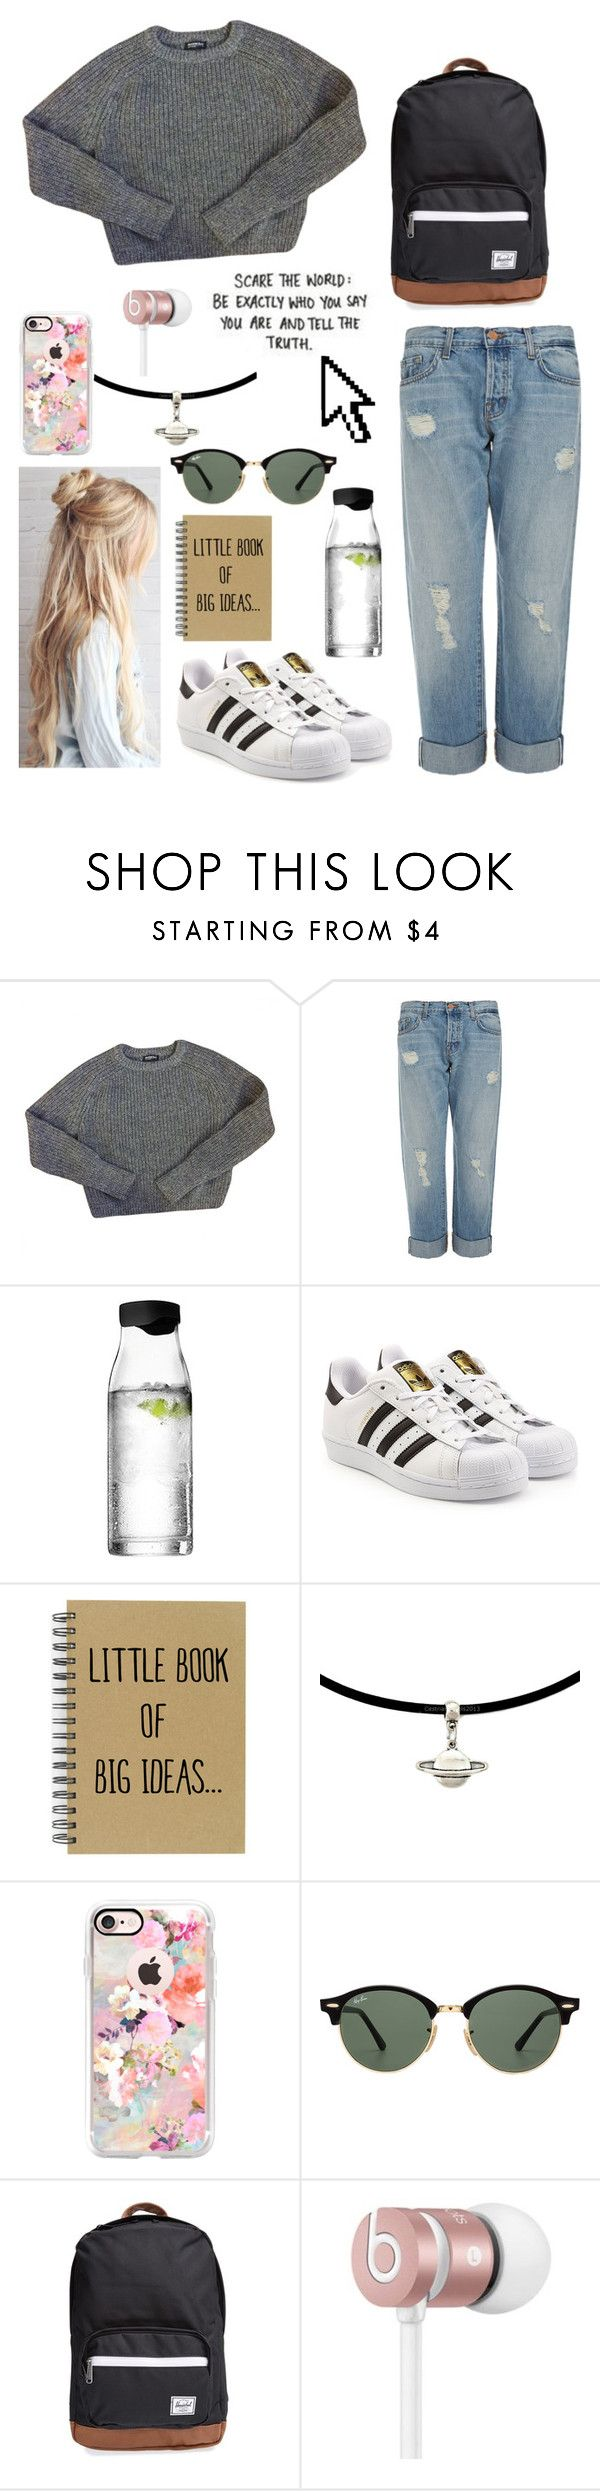 """""""Viewing a gallery💫"""" by kylieirwin11 ❤ liked on Polyvore featuring American Apparel, J Brand, Menu, adidas Originals, Casetify, Ray-Ban, Herschel Supply Co., Beats by Dr. Dre and Pointer"""